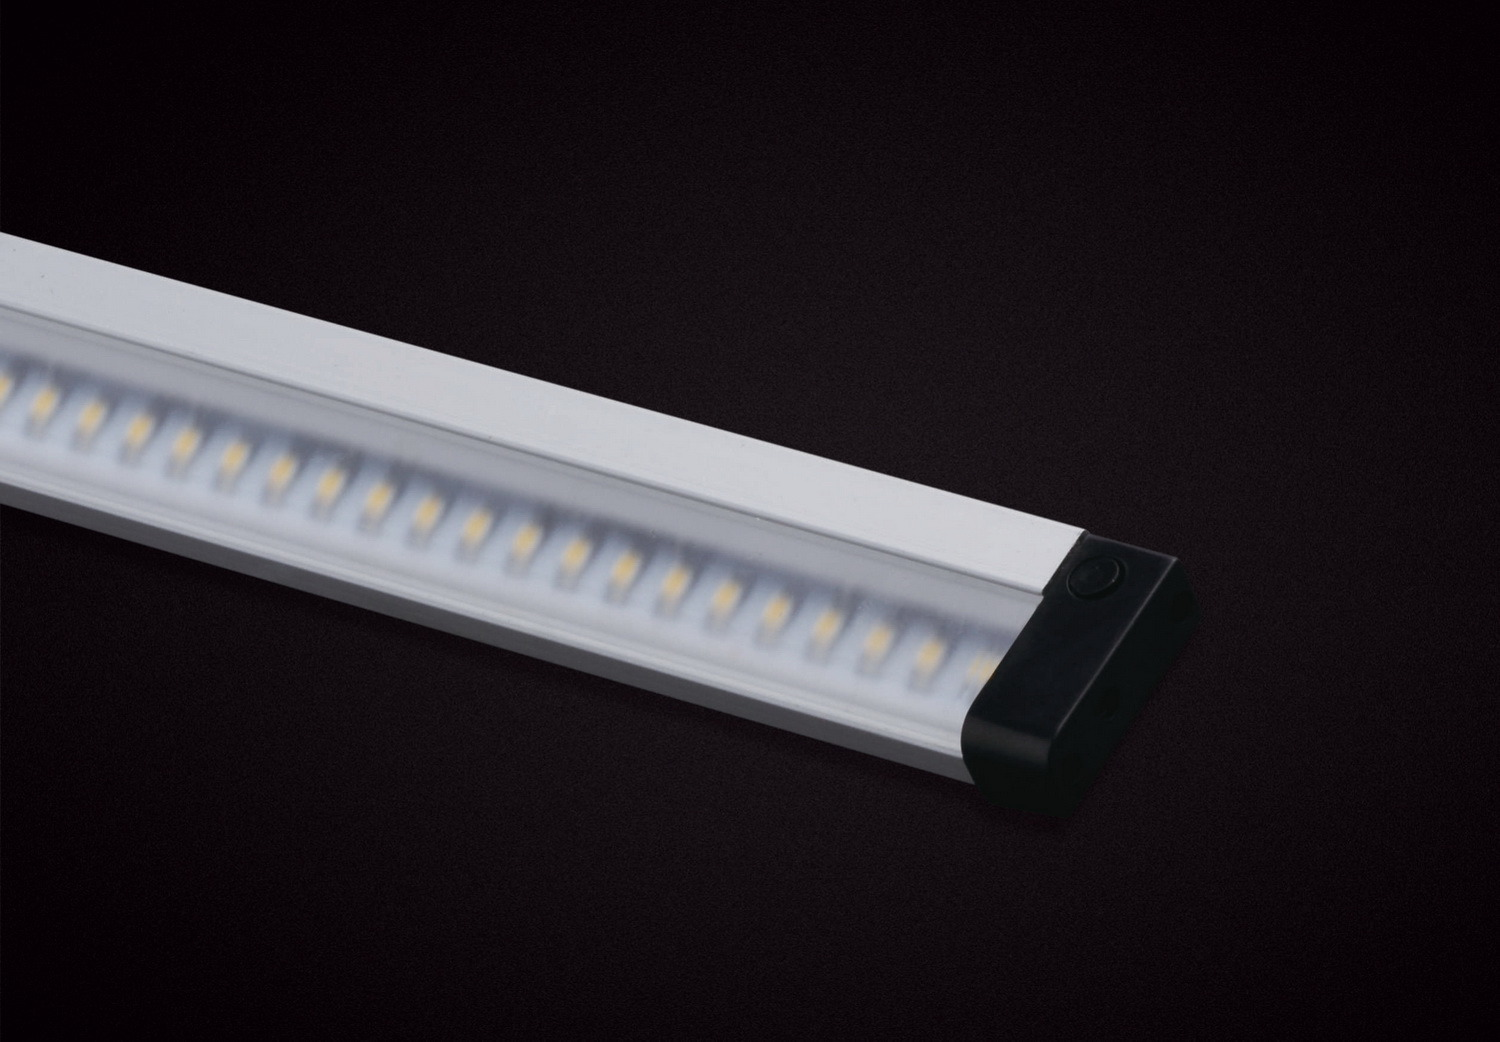 LED Wall Lamp (FT7019)